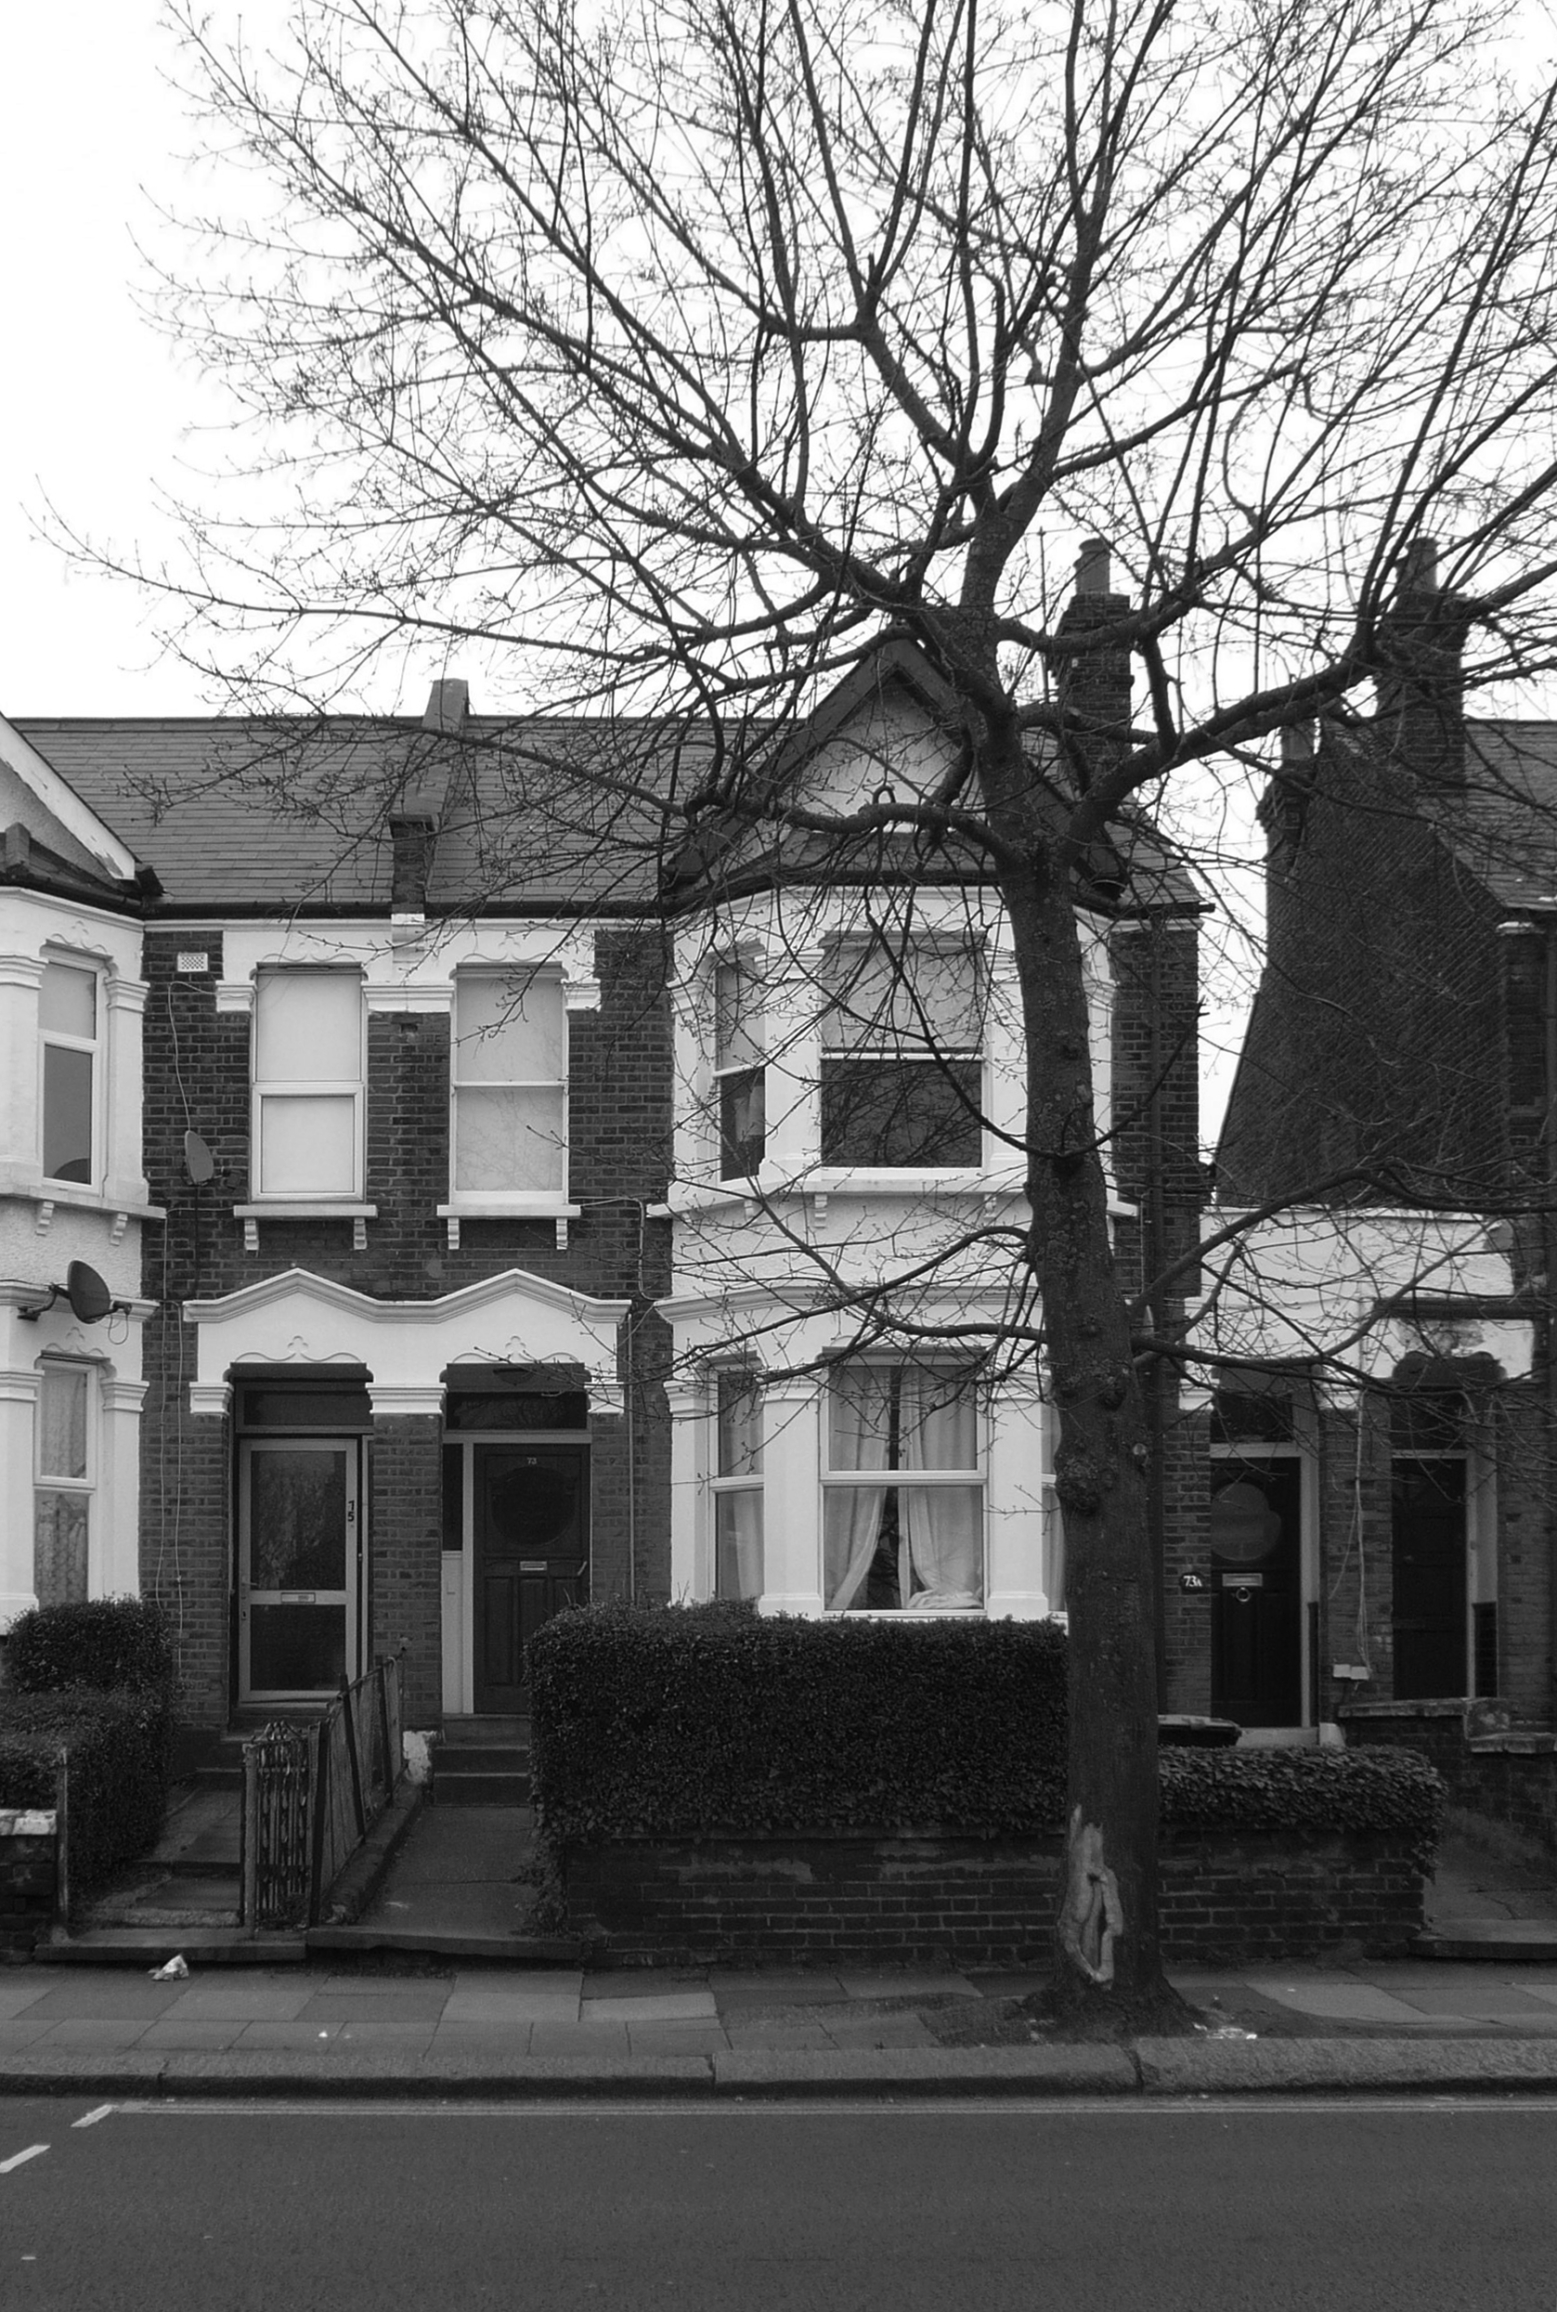 Wrottesley Road_21_bw